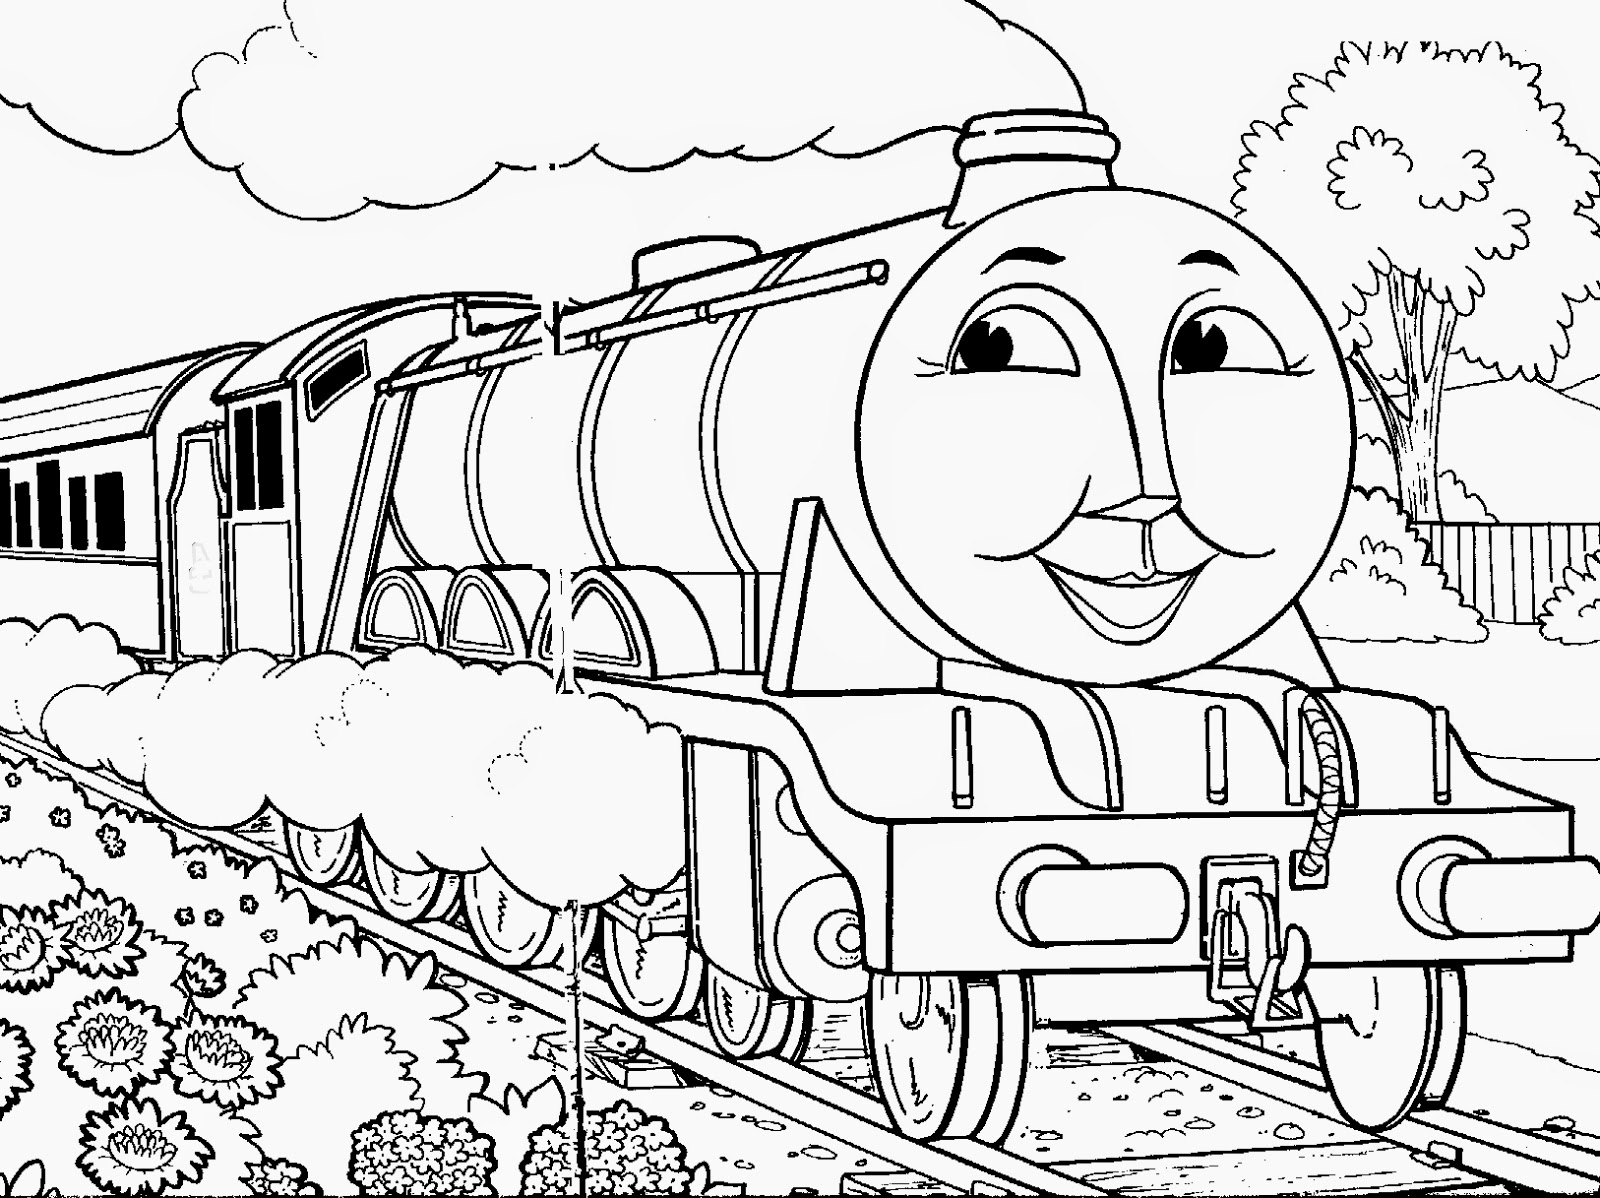 Simple Car Transportation Coloring Pages For Kids Printable Free in addition Monster Truck Coloring Pages furthermore Oi School Bag Colouring Pages likewise 259731103486096460 as well Amazing Dump Truck Coloring Pages With And For Toddlers. on toy trucks for toddlers